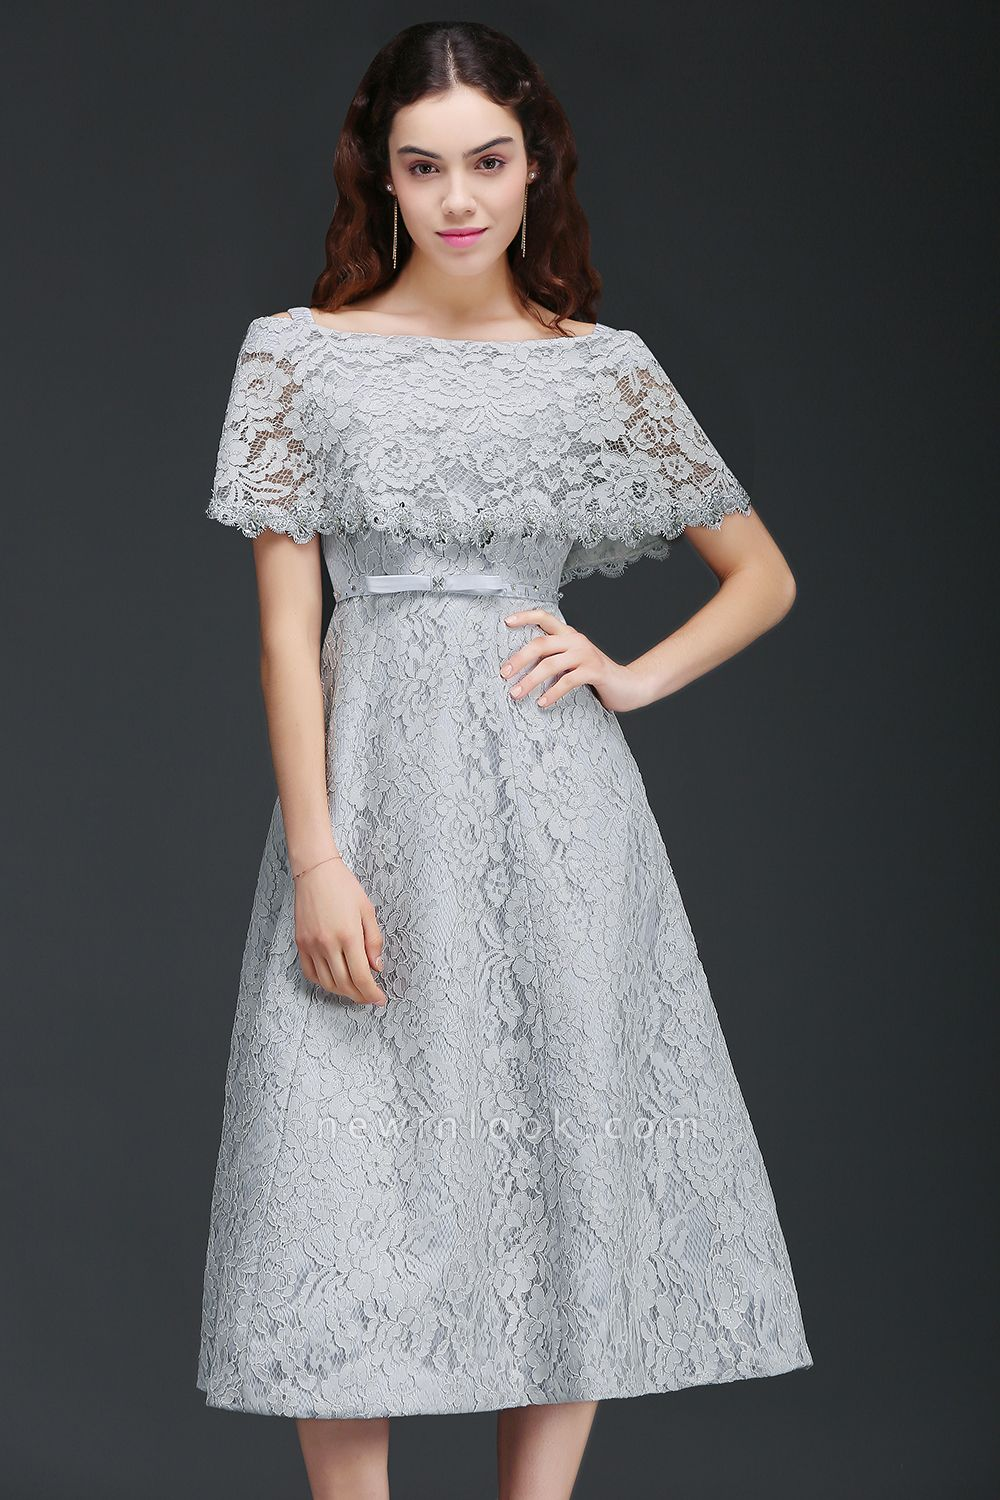 ALEXIS | A Line Off Shoulder Tea-Length Lace 15 Dama Dresses With Sash